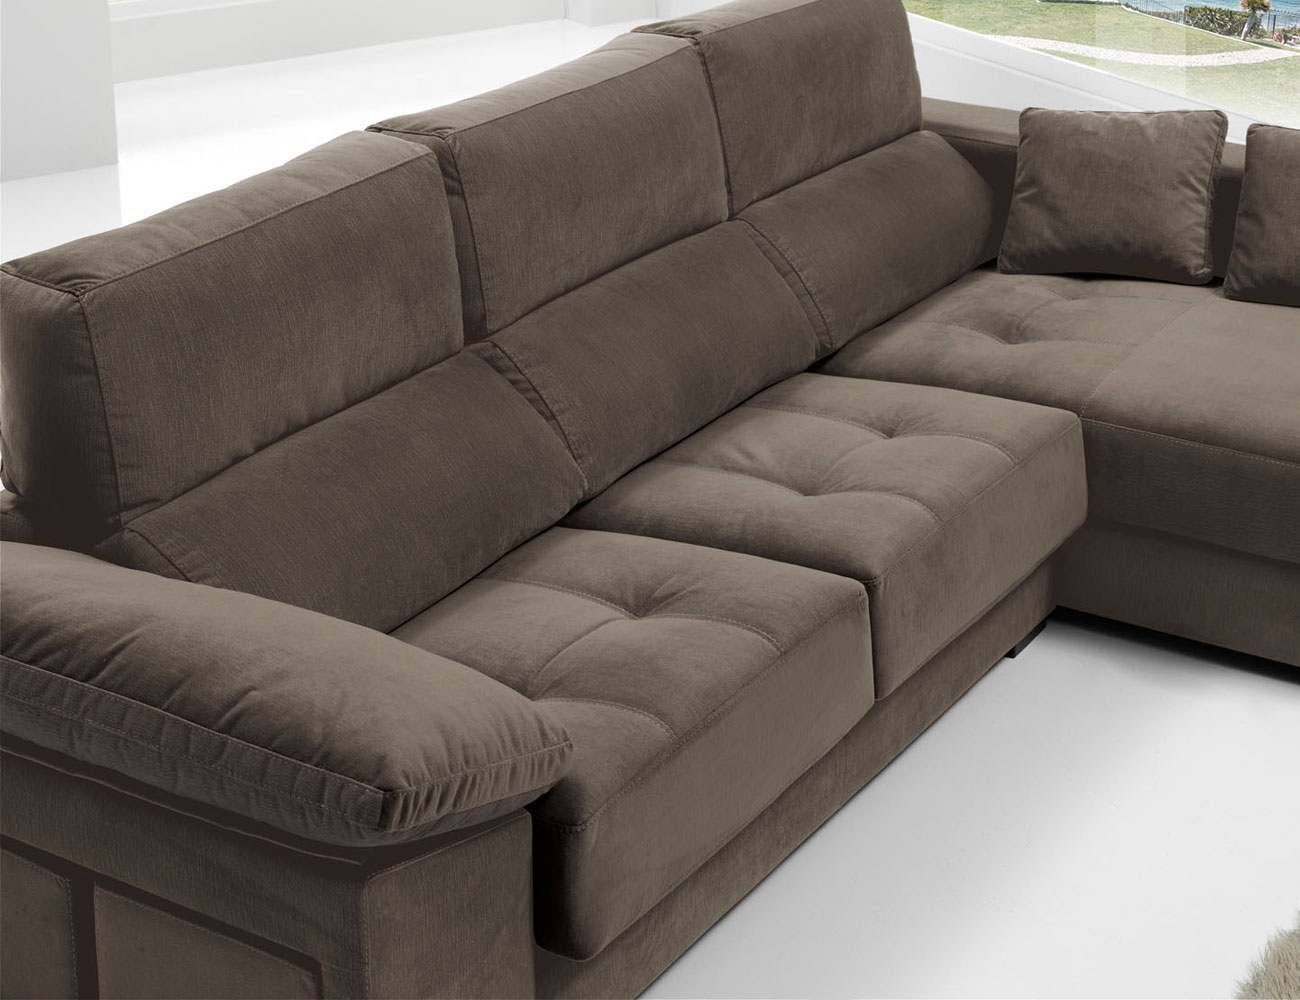 Sofa chaiselongue anti manchas bering pouf 238